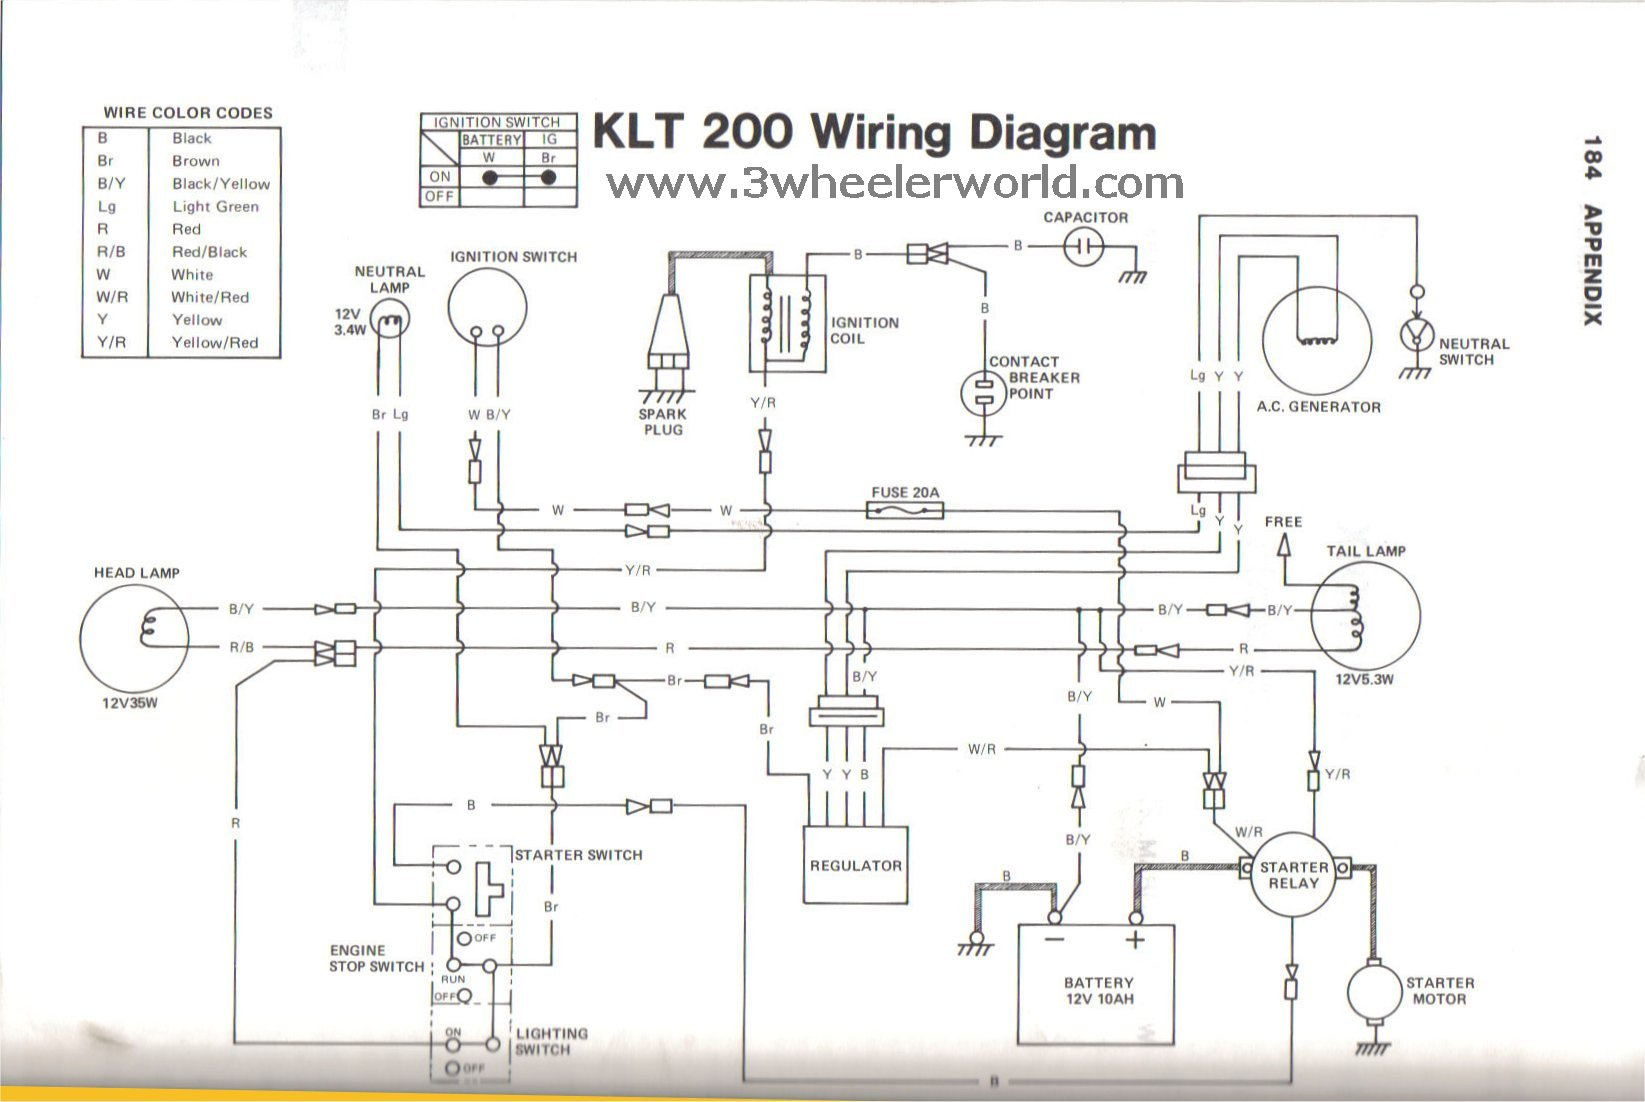 1982 Kawasaki Wiring Diagrams 200 Worksheet And Diagram For K Z Ltd 750 Owner Manual Books U2022 Rh Solarrius Com Motorcycle Kz1000 Petcock Fuel